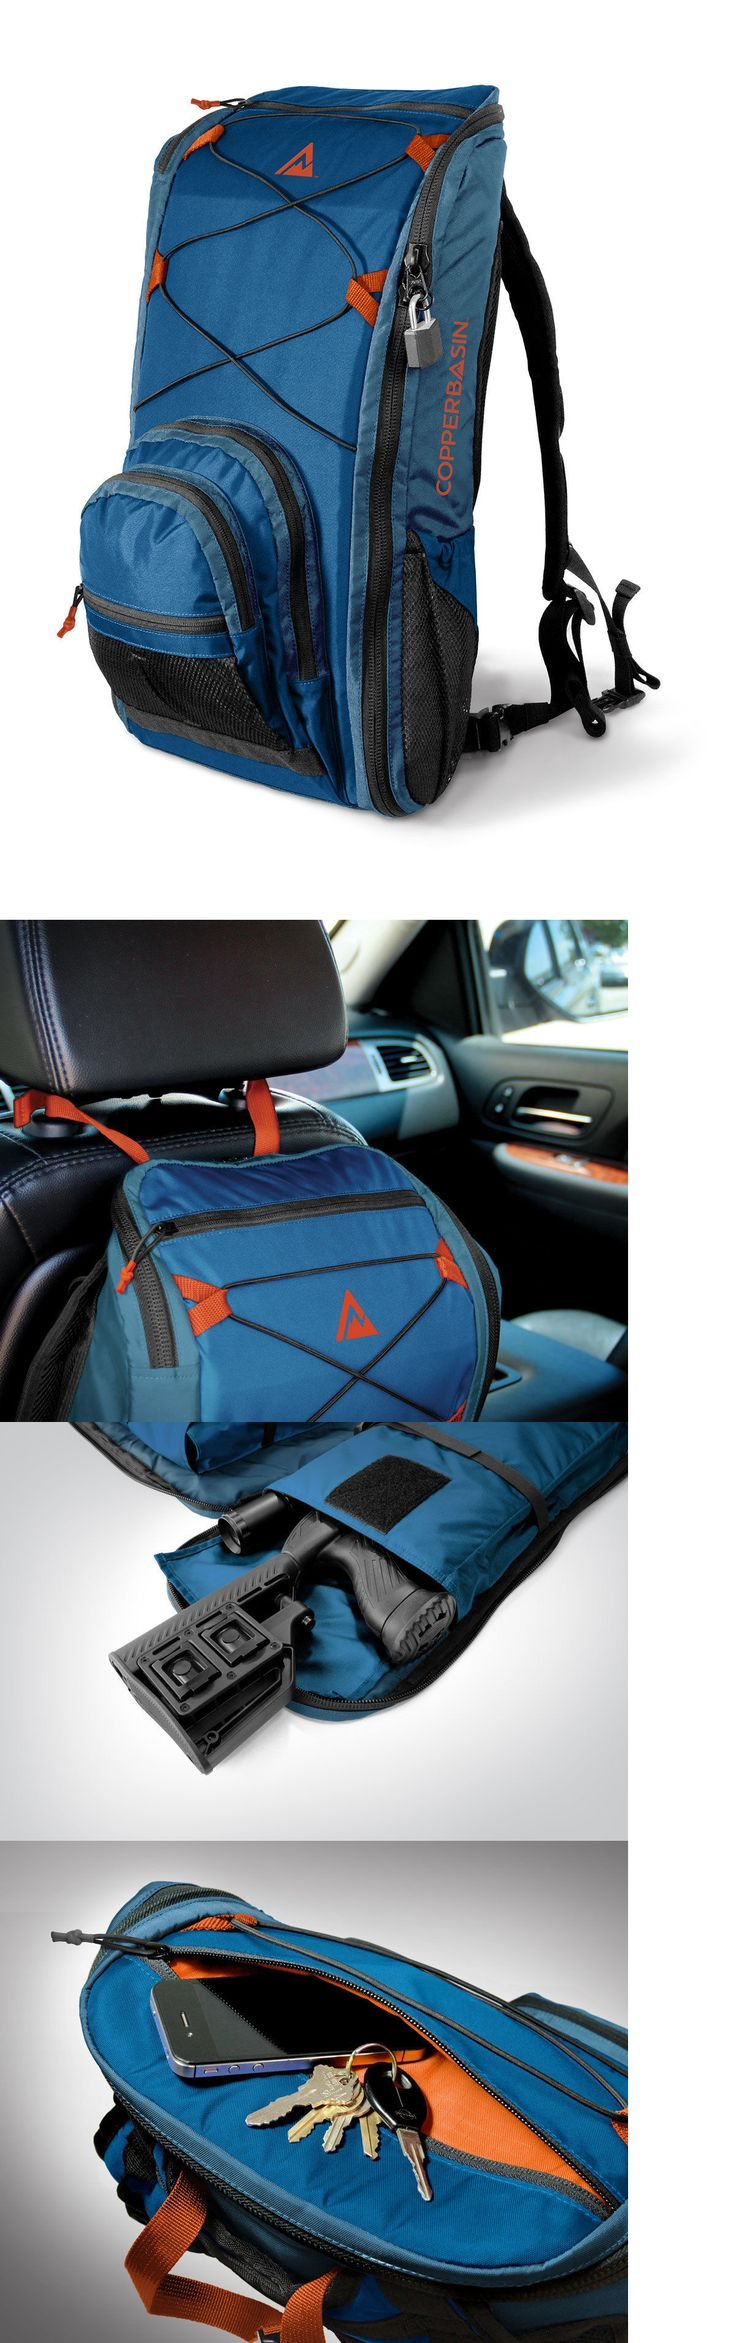 Tactical Bags and Packs 177899: Ruger 10 22 Takedown Pack - Blue Orange -> BUY IT NOW ONLY: $99.99 on eBay!